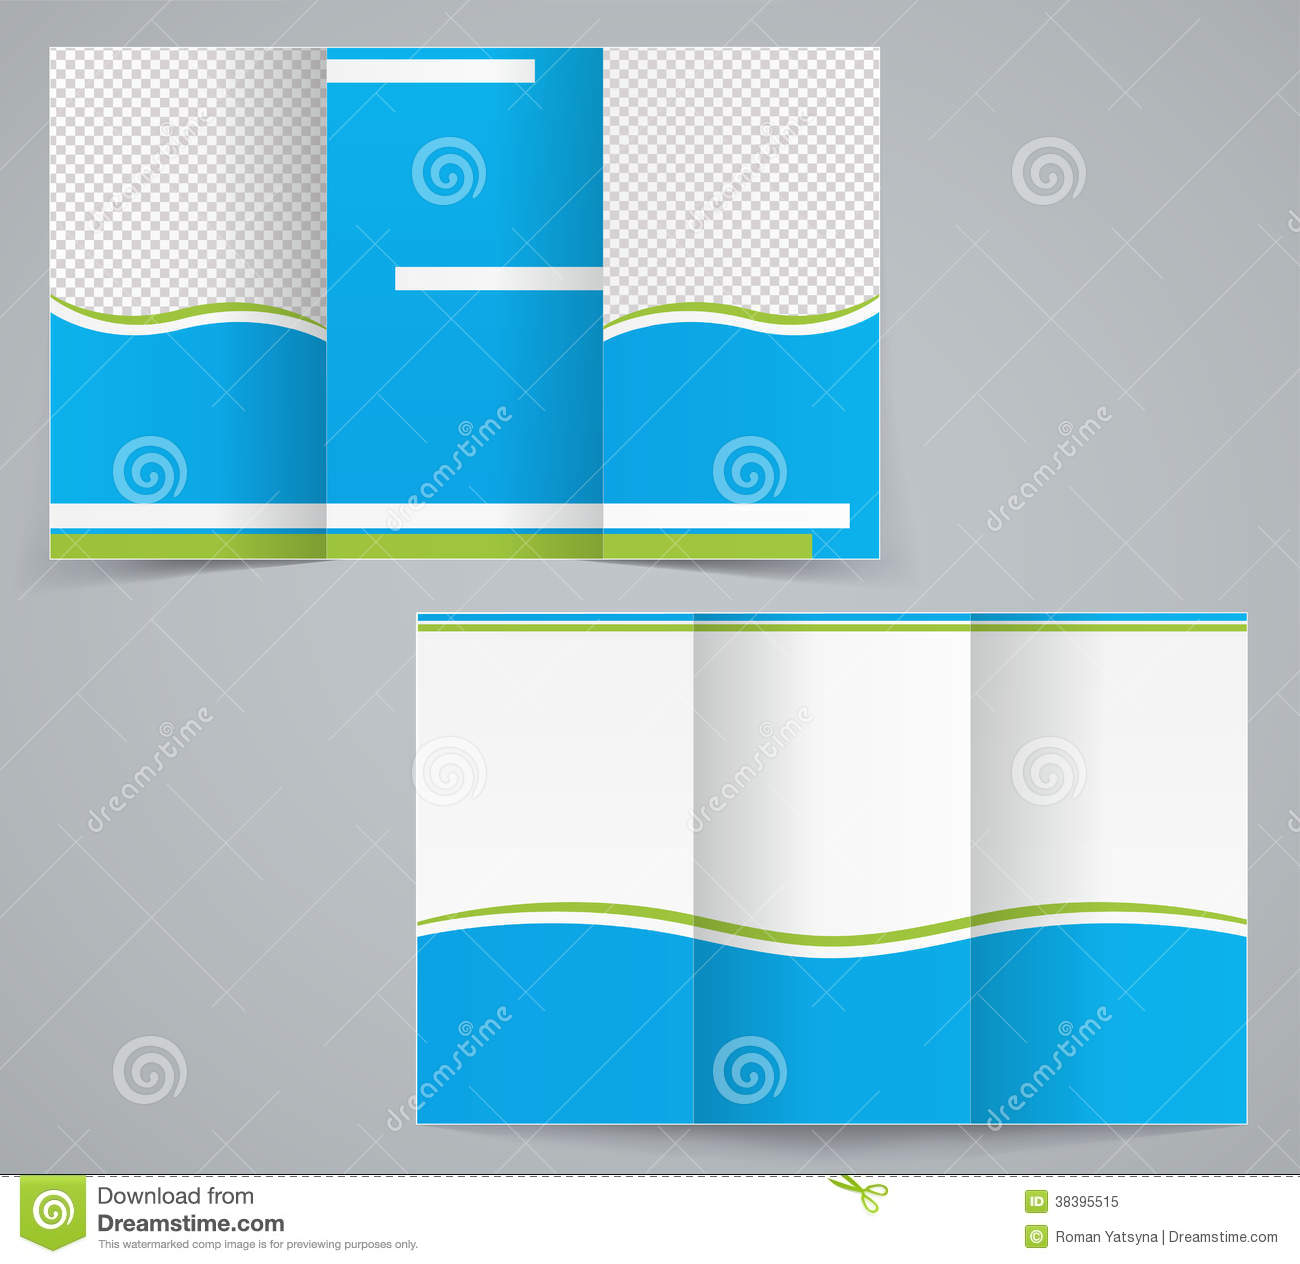 Tri fold business brochure template blue design stock vector tri fold business brochure template blue design accmission Images